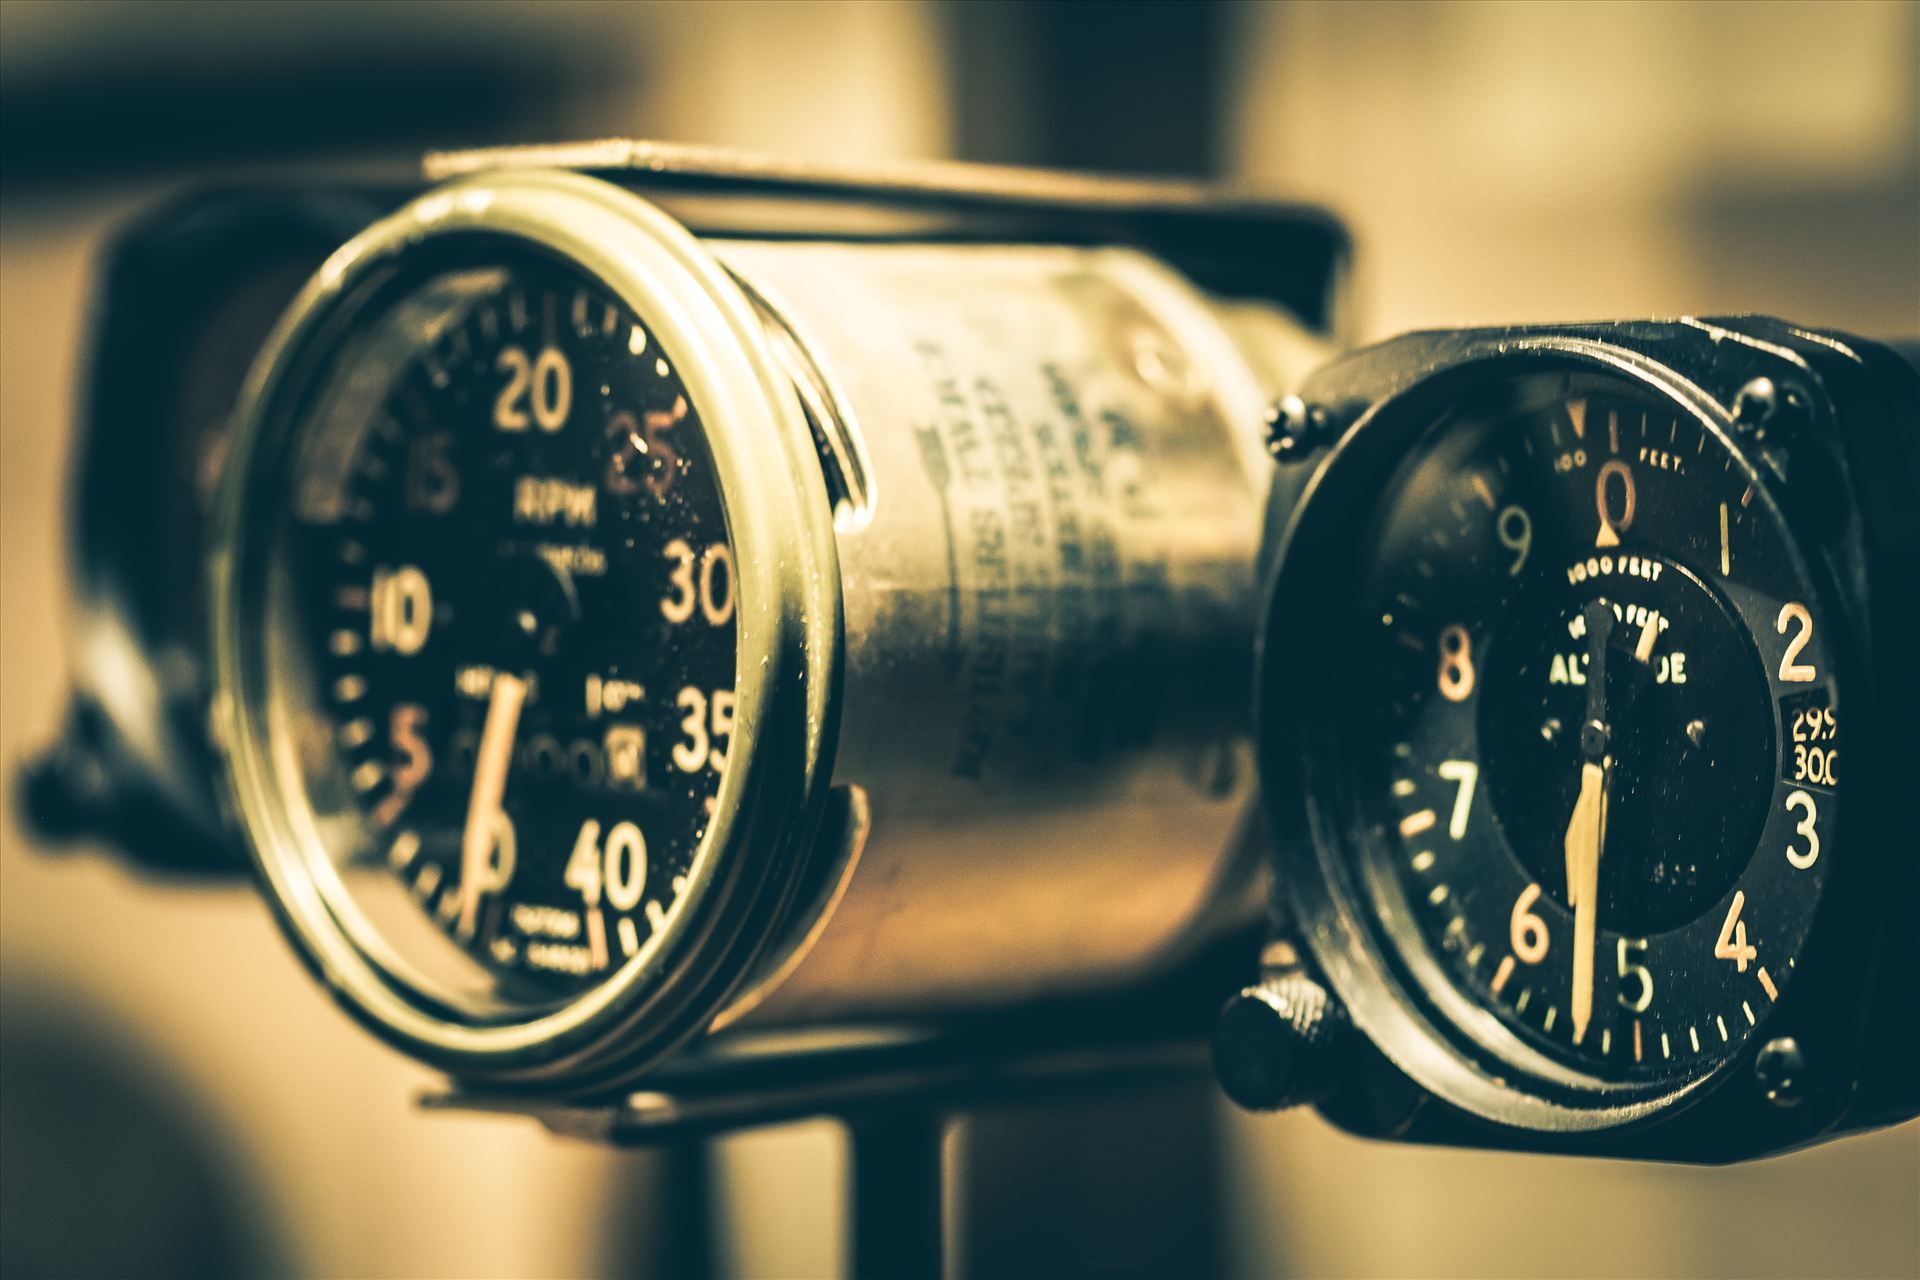 Dial it In - Vintage aviation gauges at the Ghurka store. by D Scott Smith